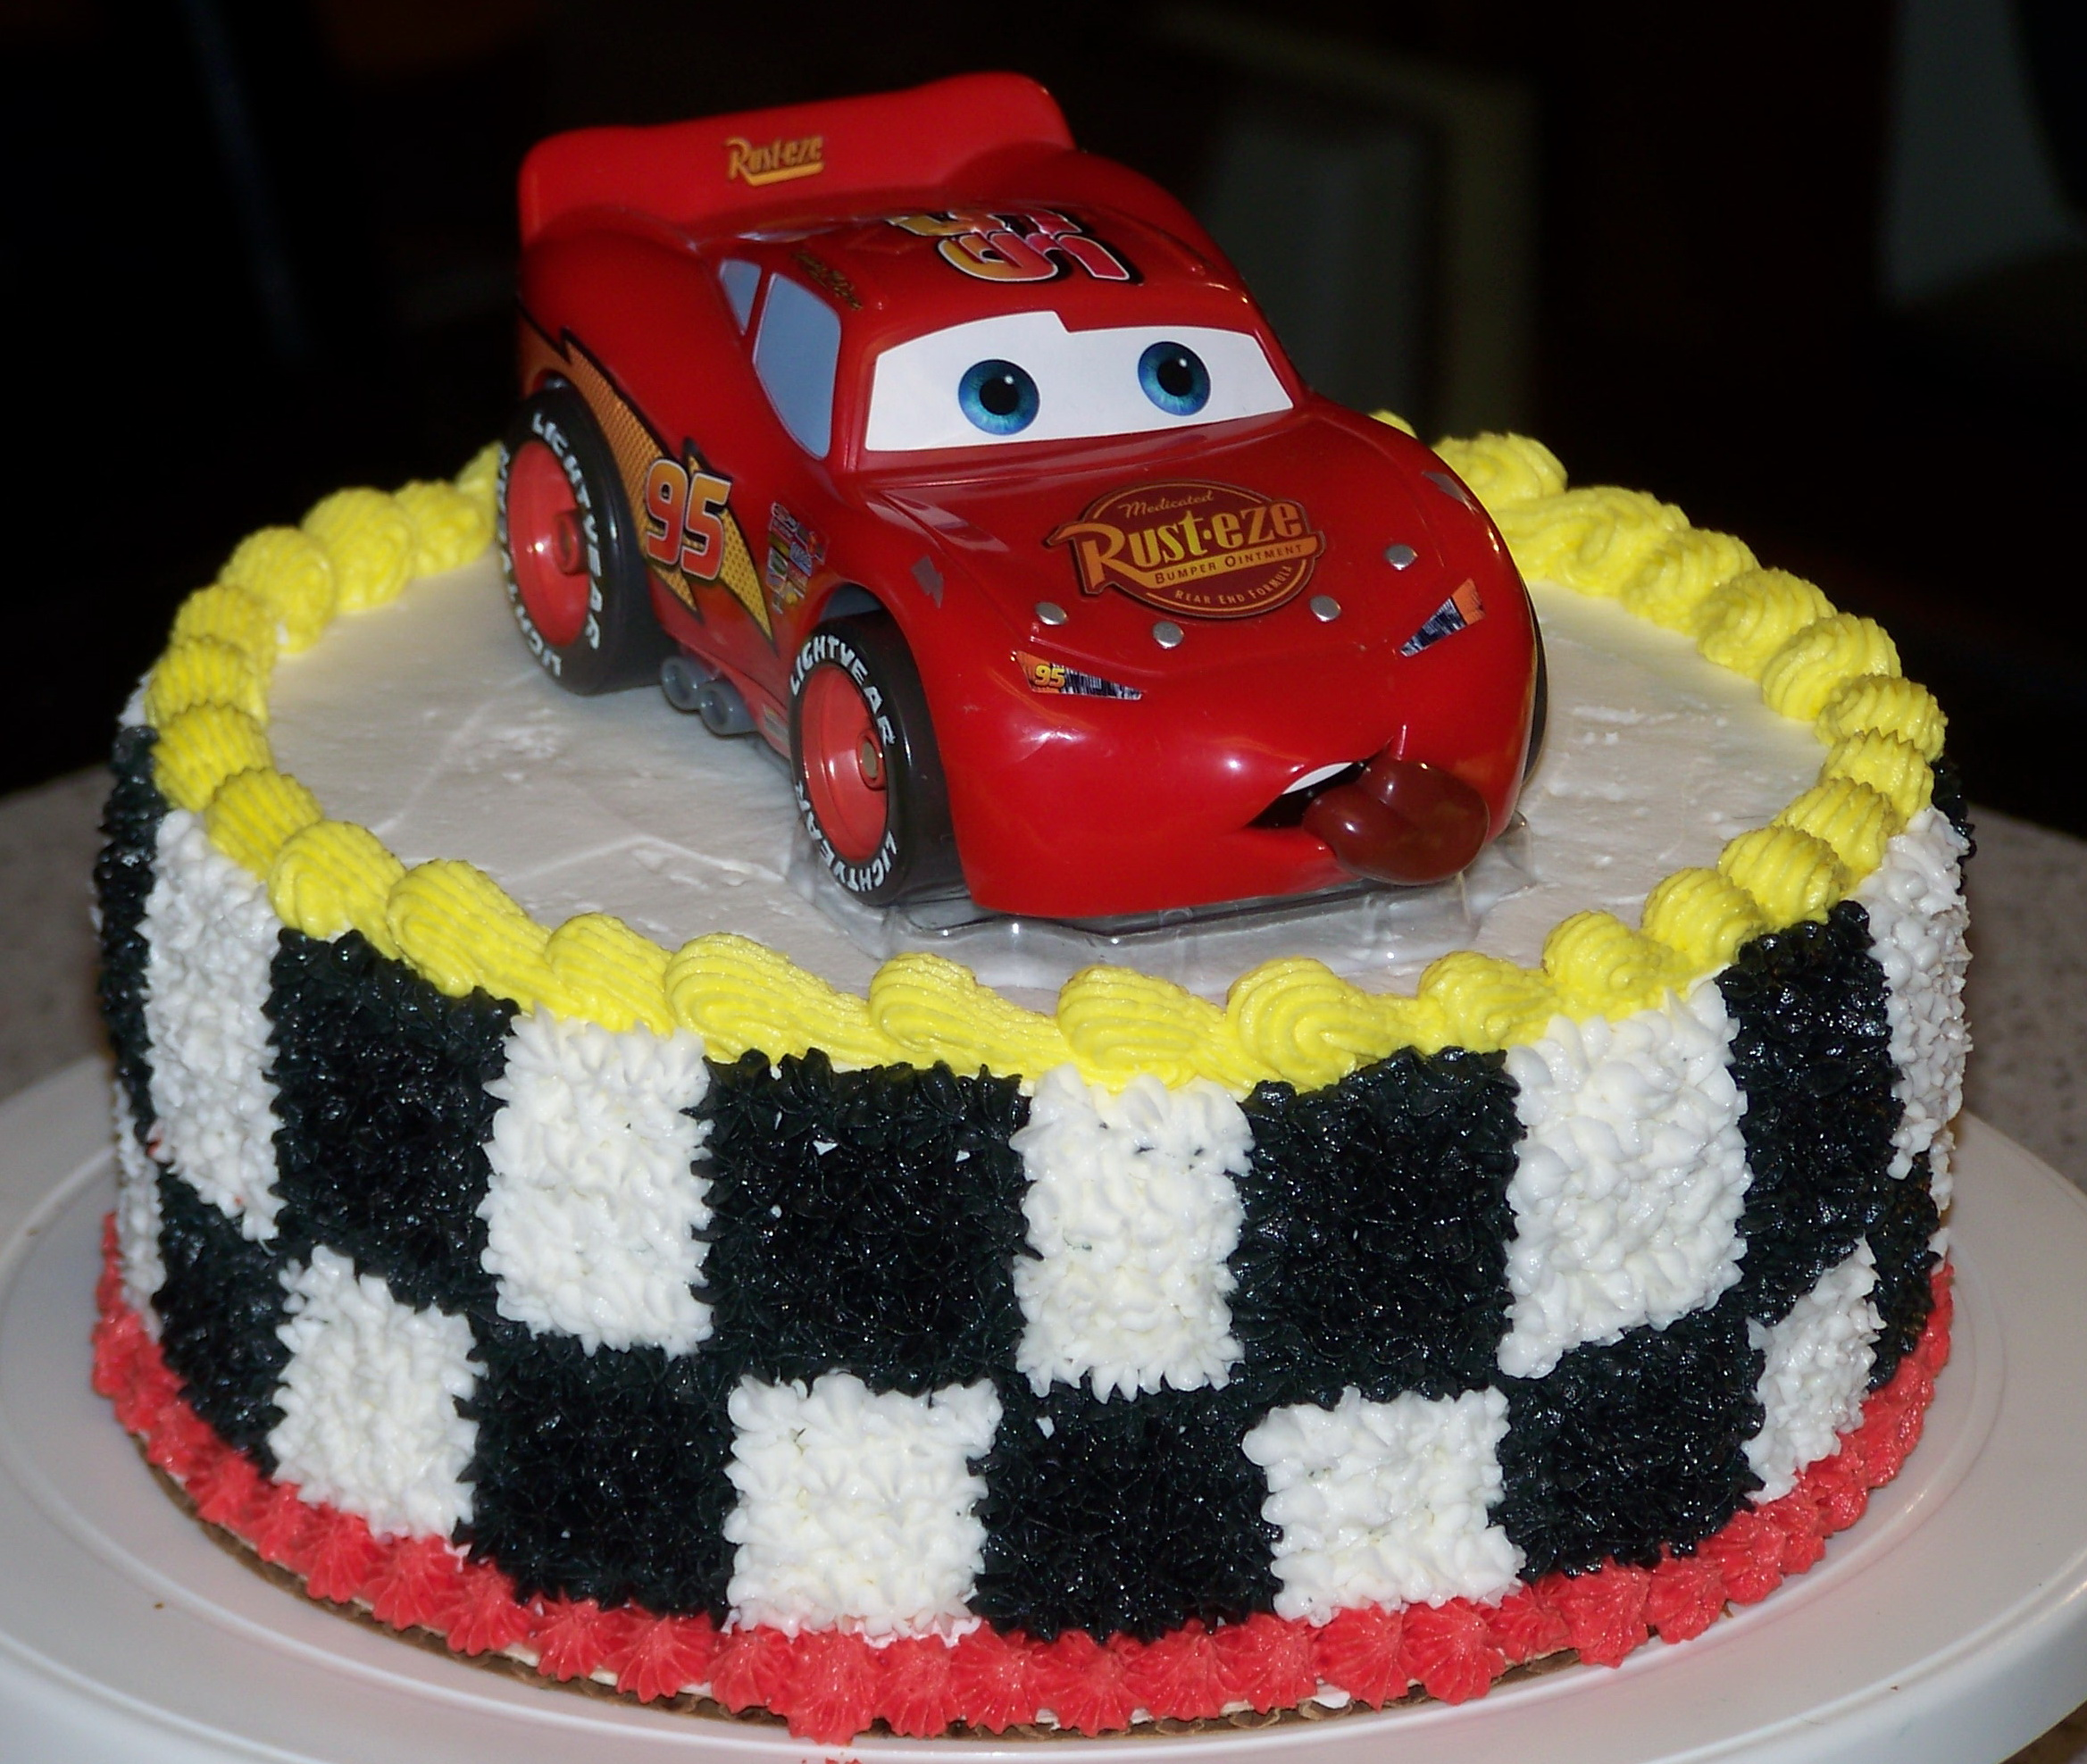 Cake Design Cars Theme : CARS BIRTHDAY CAKE - Fomanda Gasa